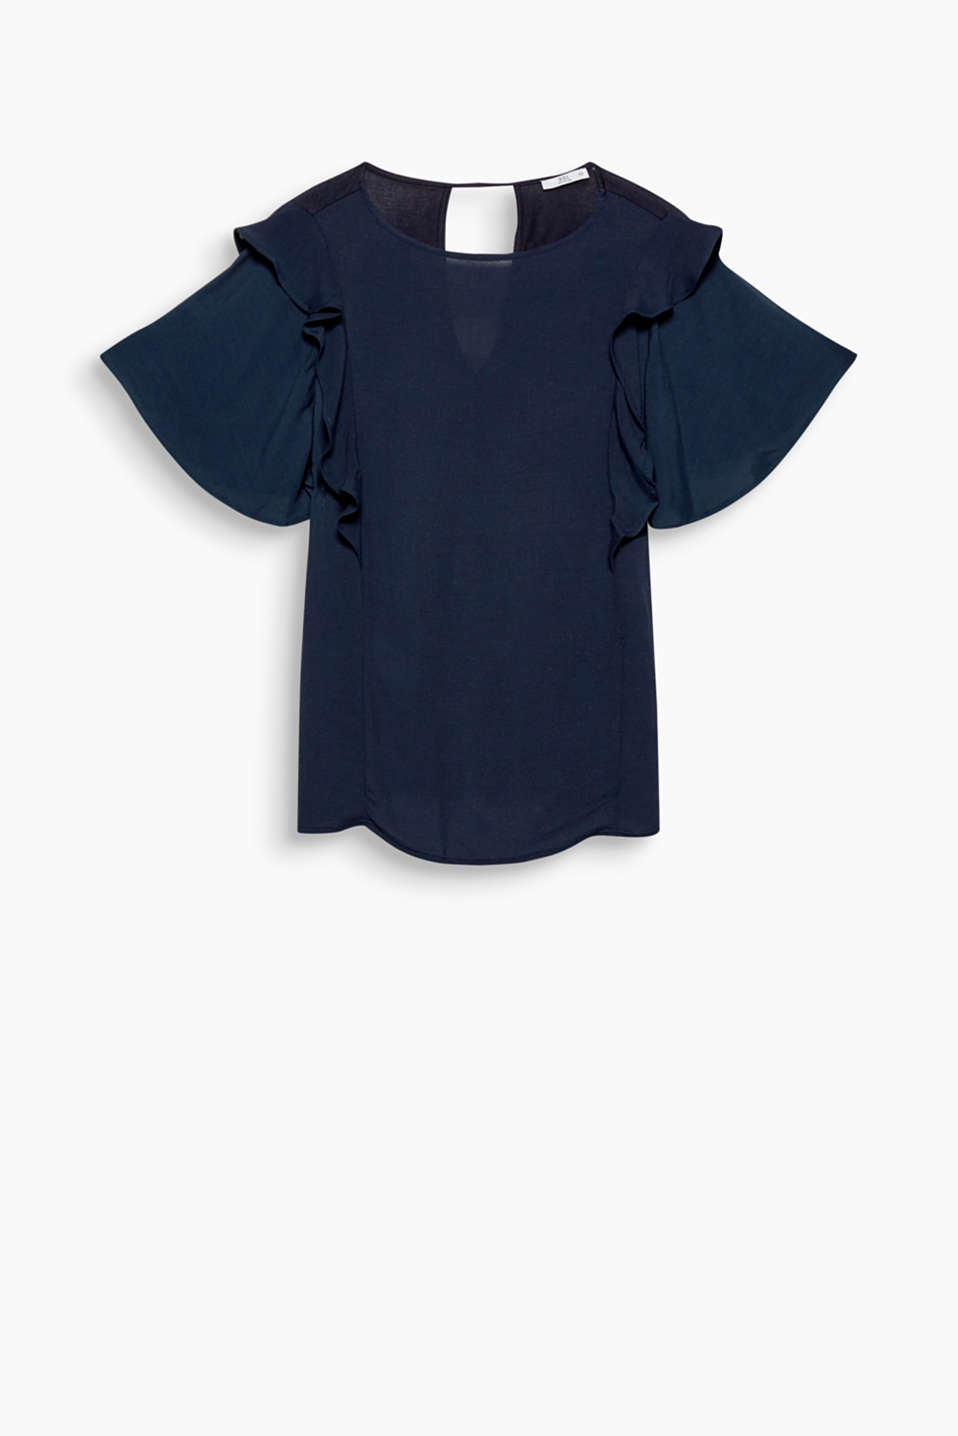 With a wide round neckline and feminine flounces at the shoulder sections: blouse in soft blended fabric